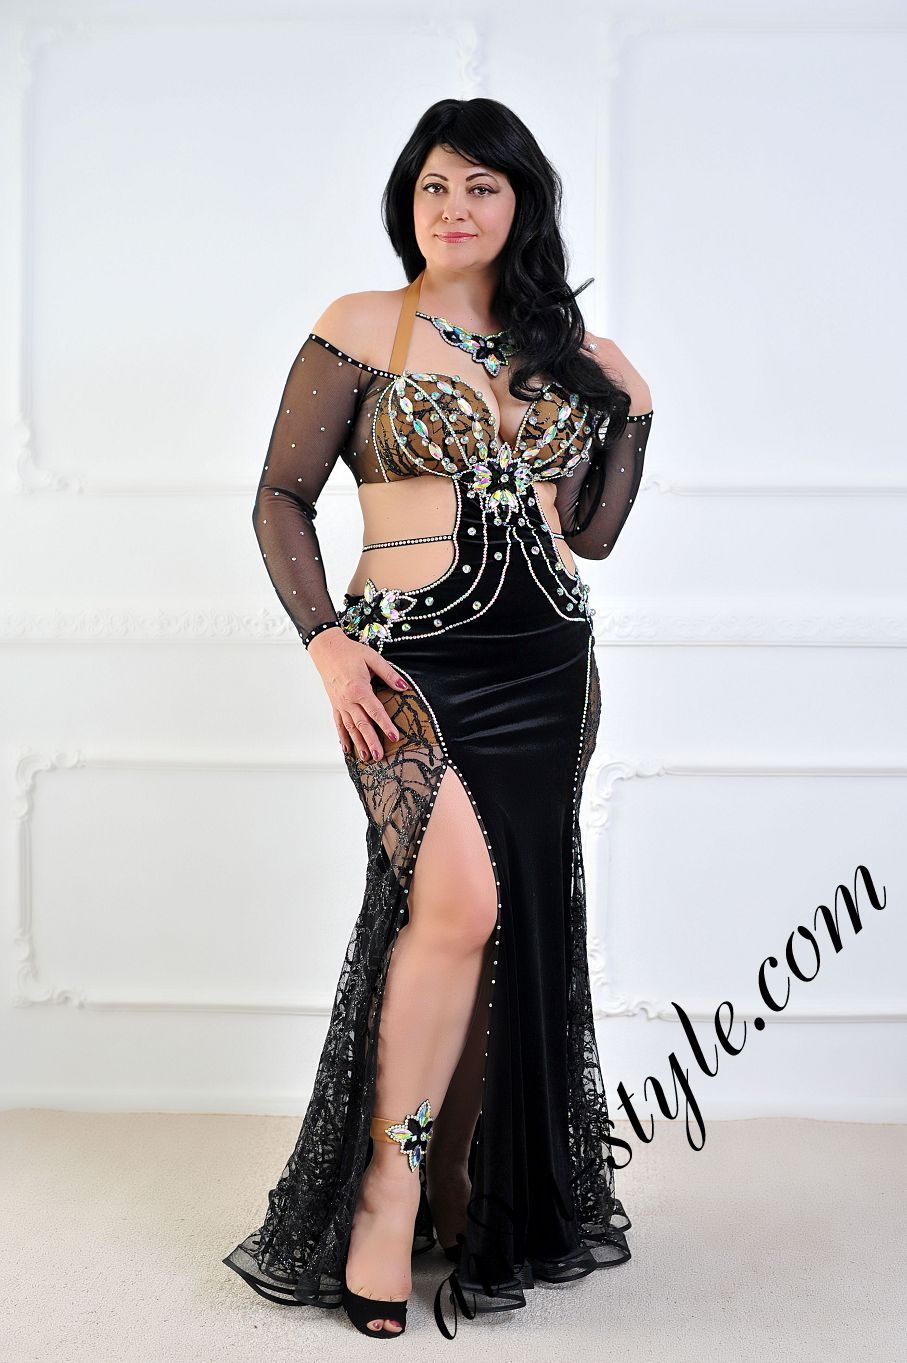 aida style belly dance costume in black color